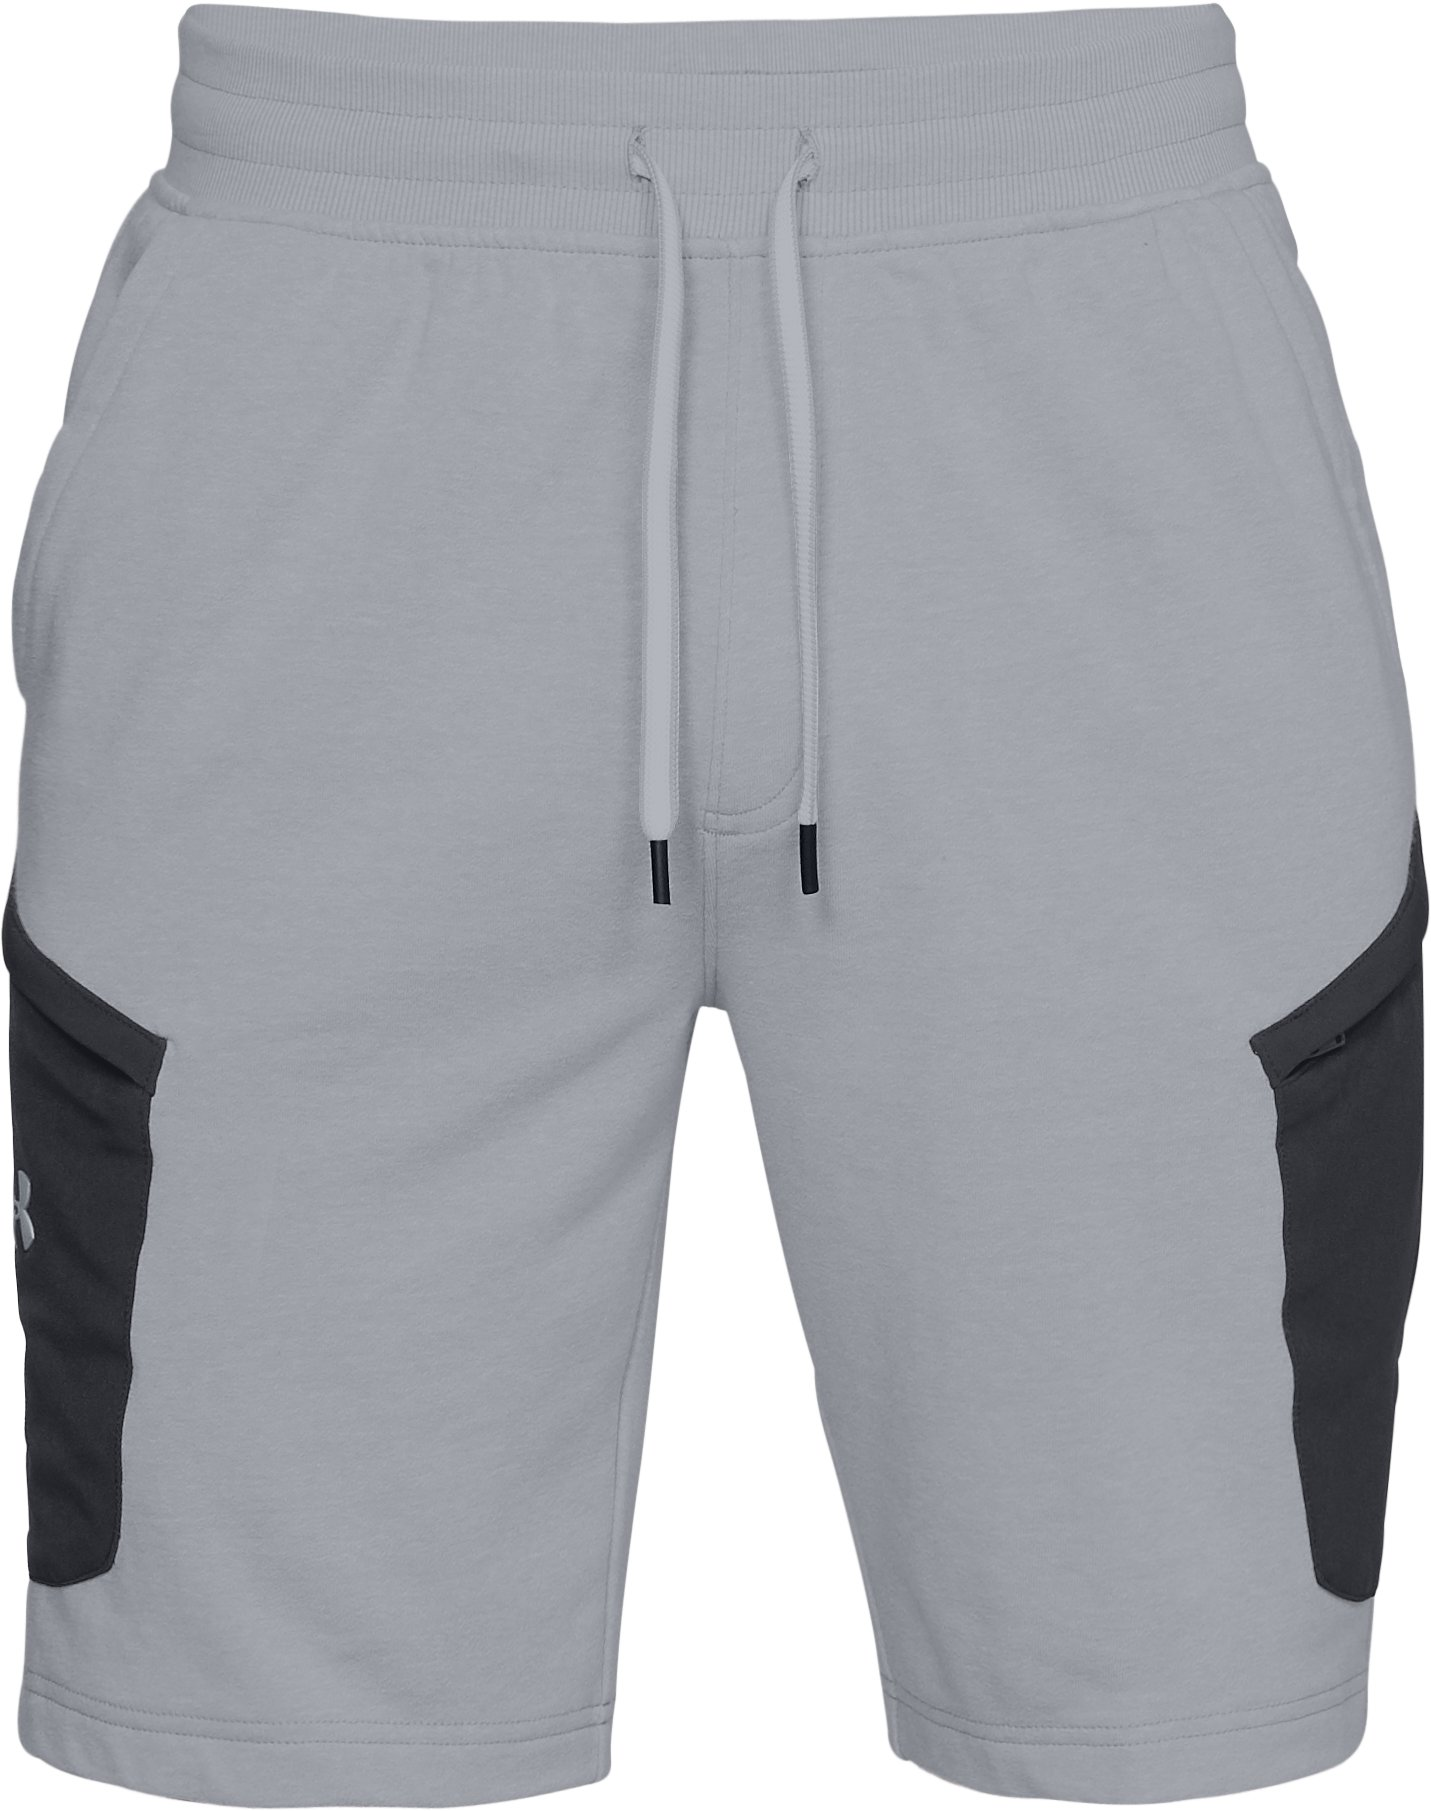 Men'a UA Microthread Terry Shorts, Overcast Gray Light Heather,